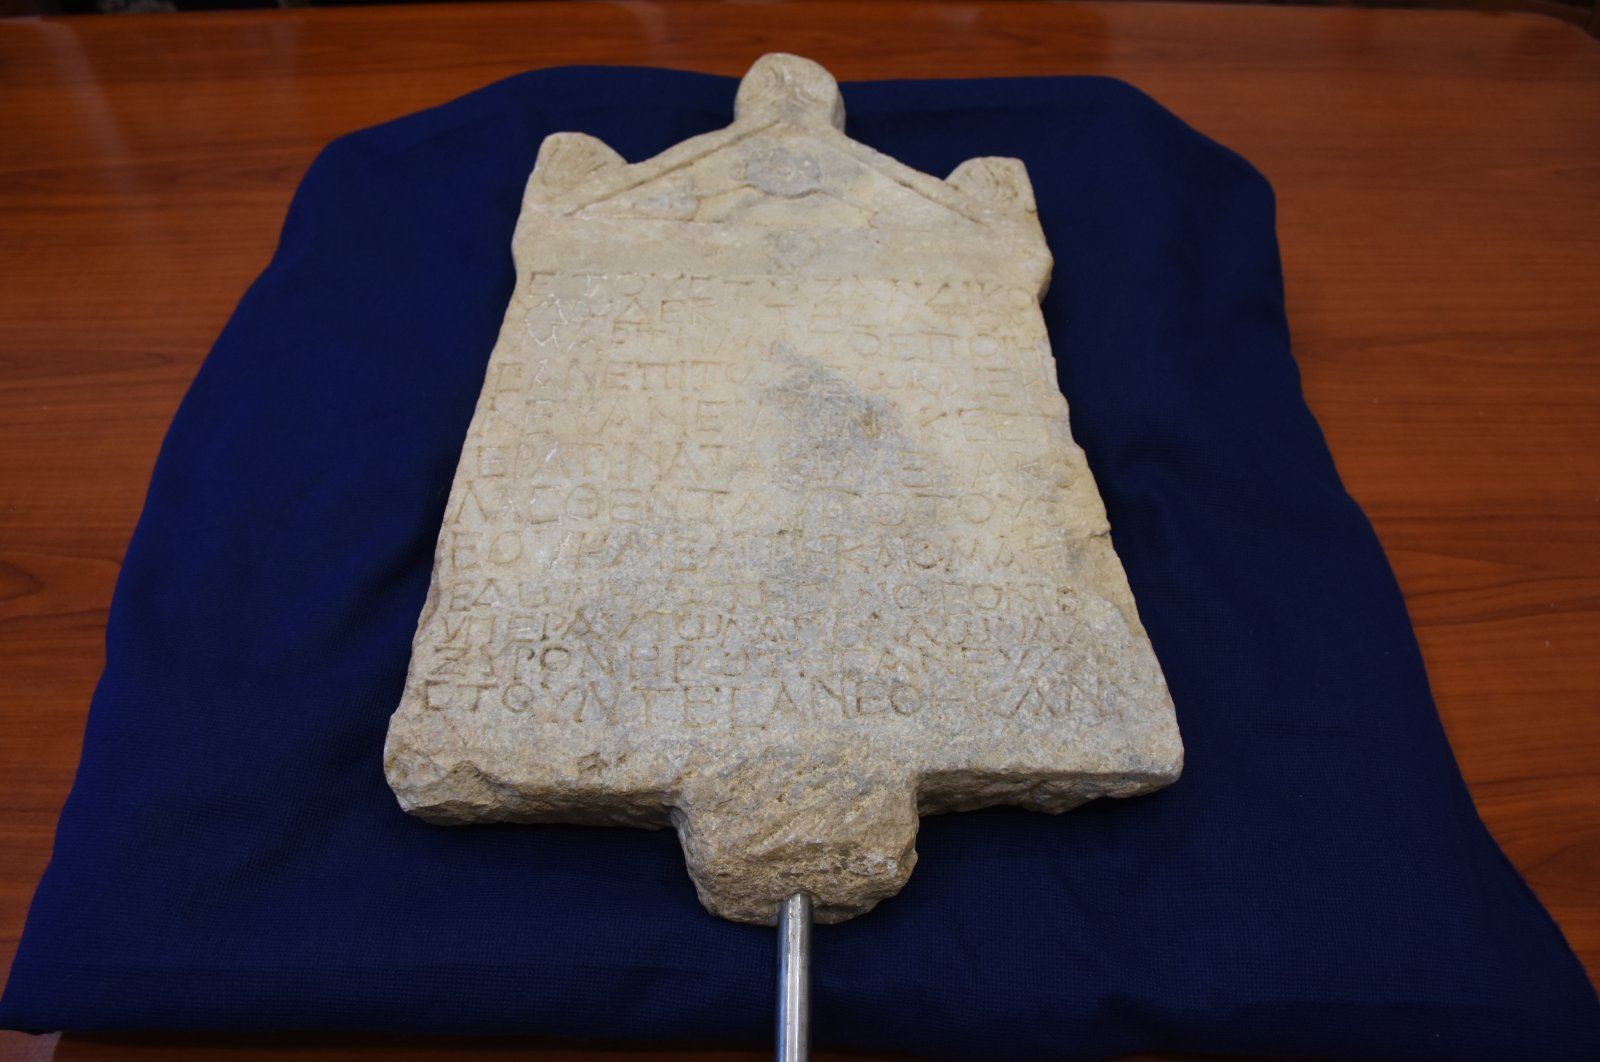 The ancient inscription was handed to Turkish officials in Florence, Italy, Sept. 19, 2020. (AA Photo)